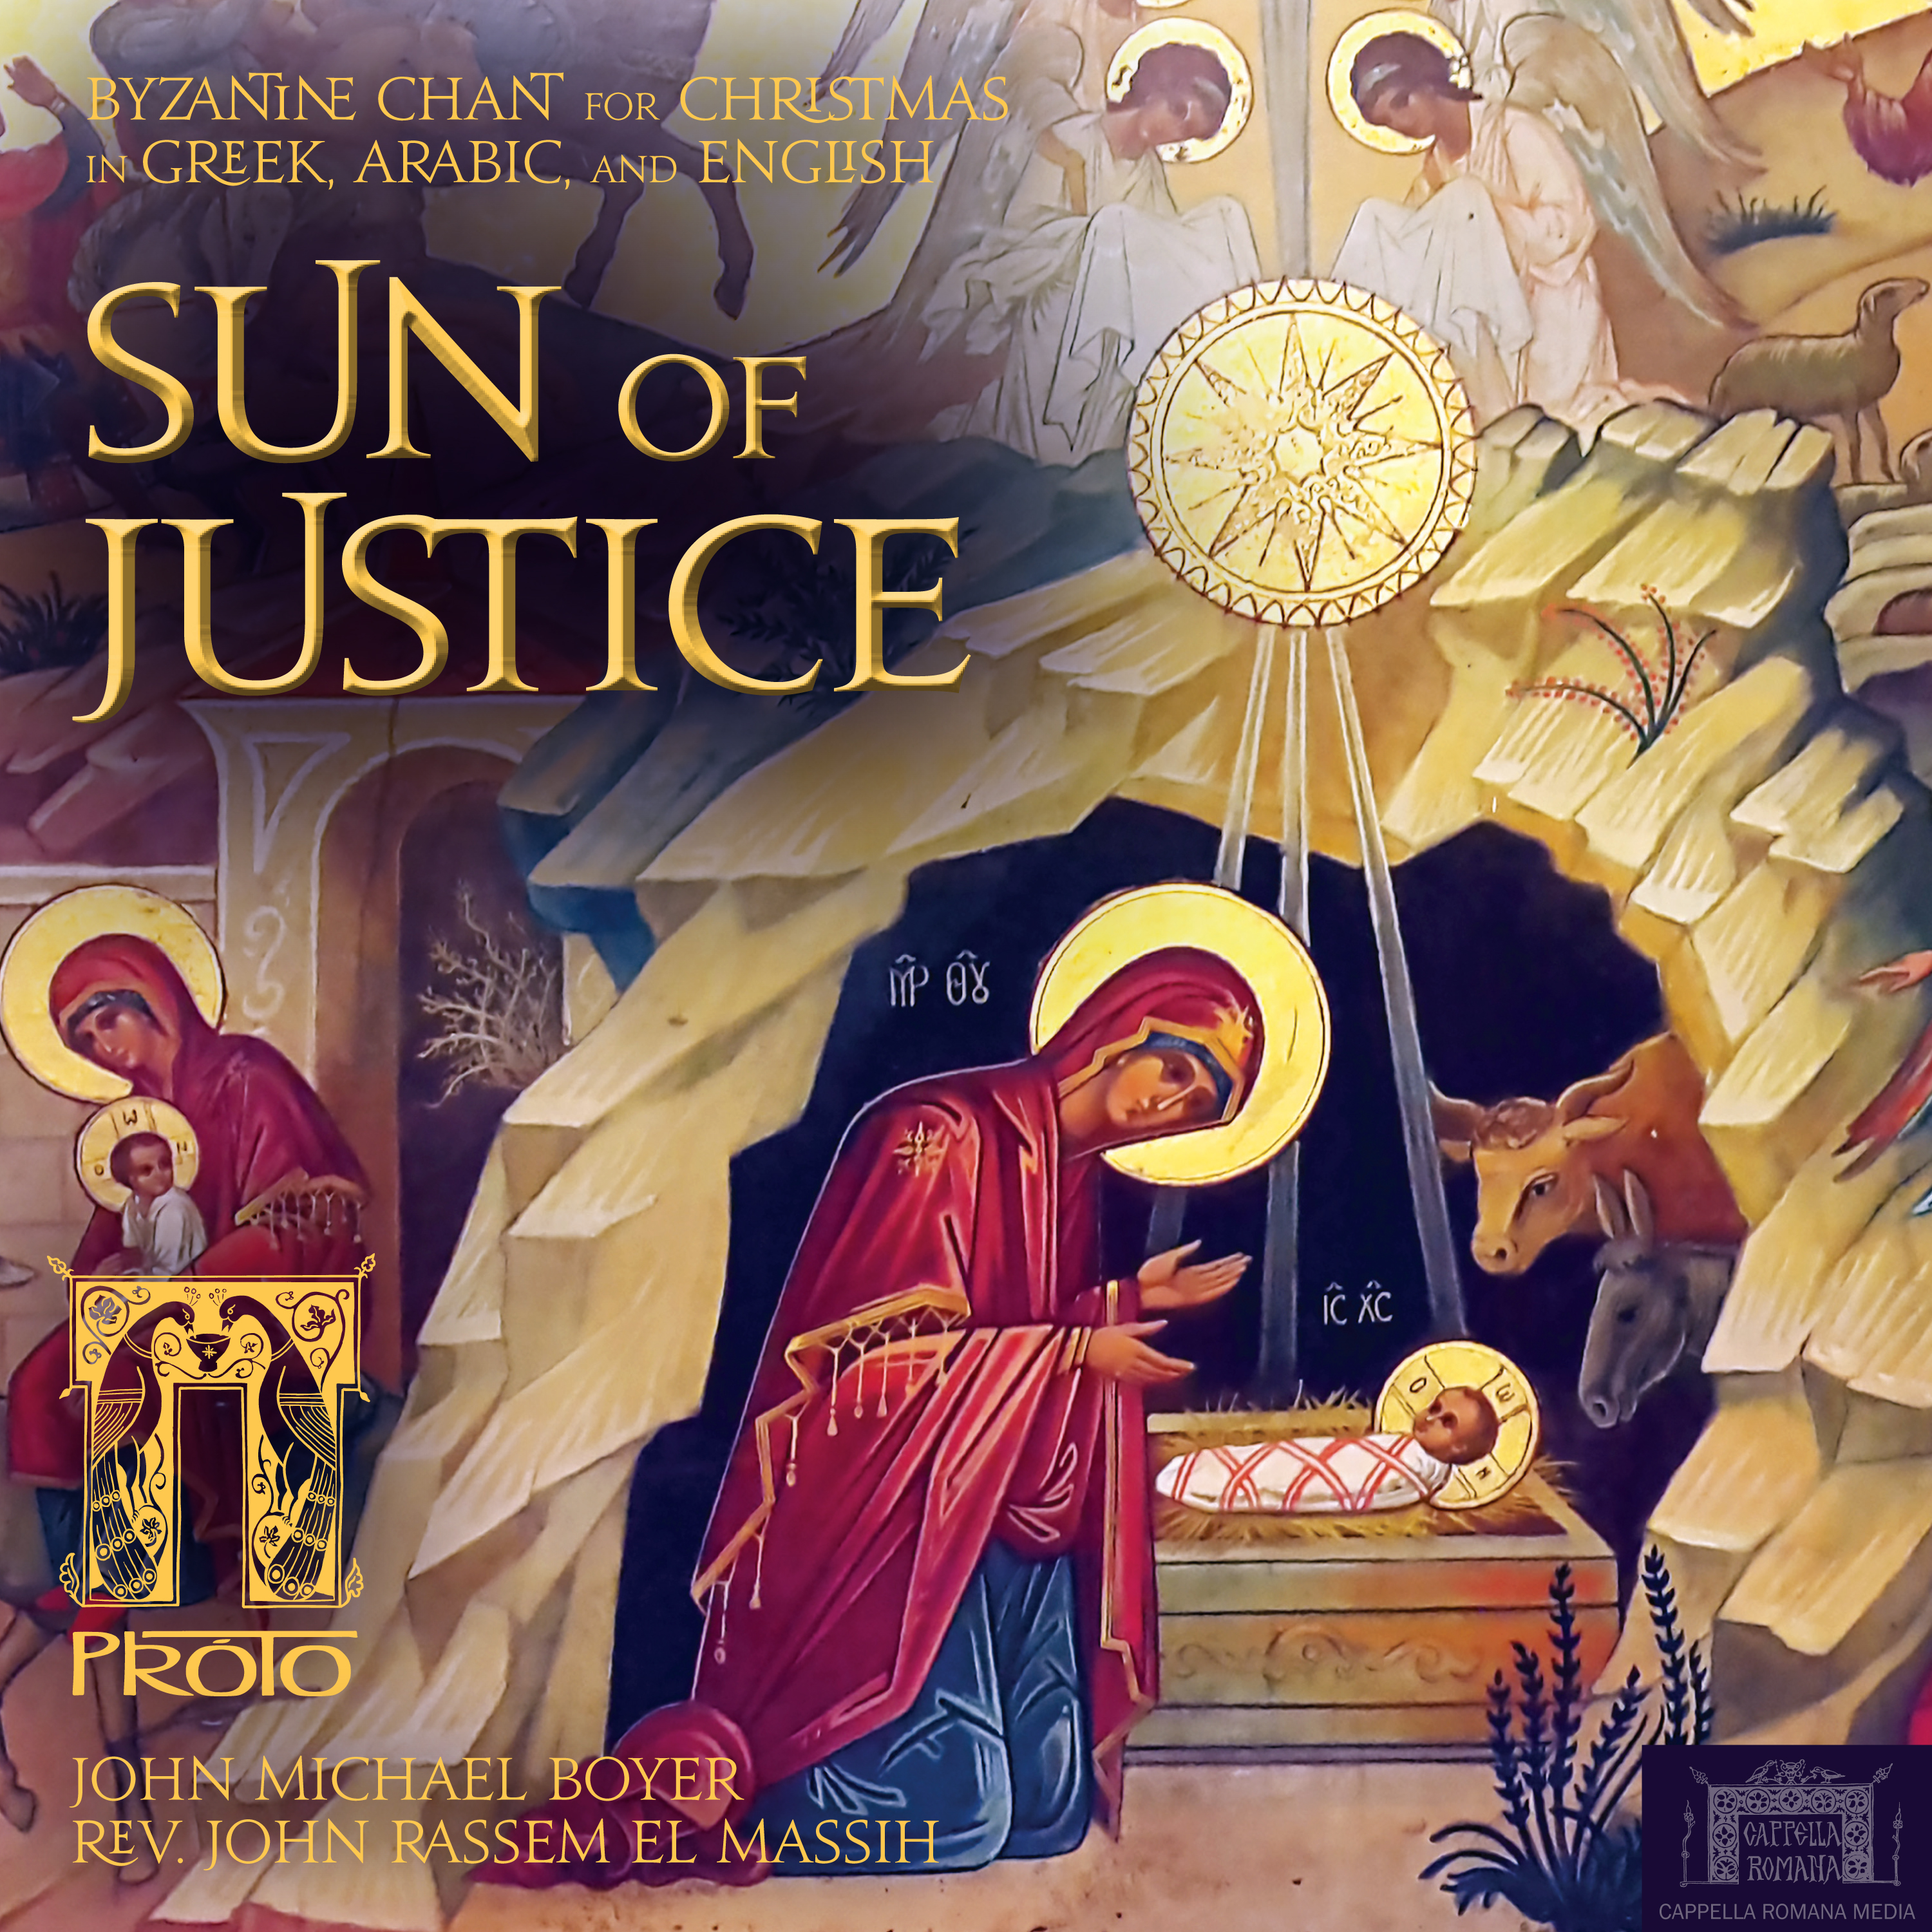 The Sun of Justice: Byzantine Chant for Christmas